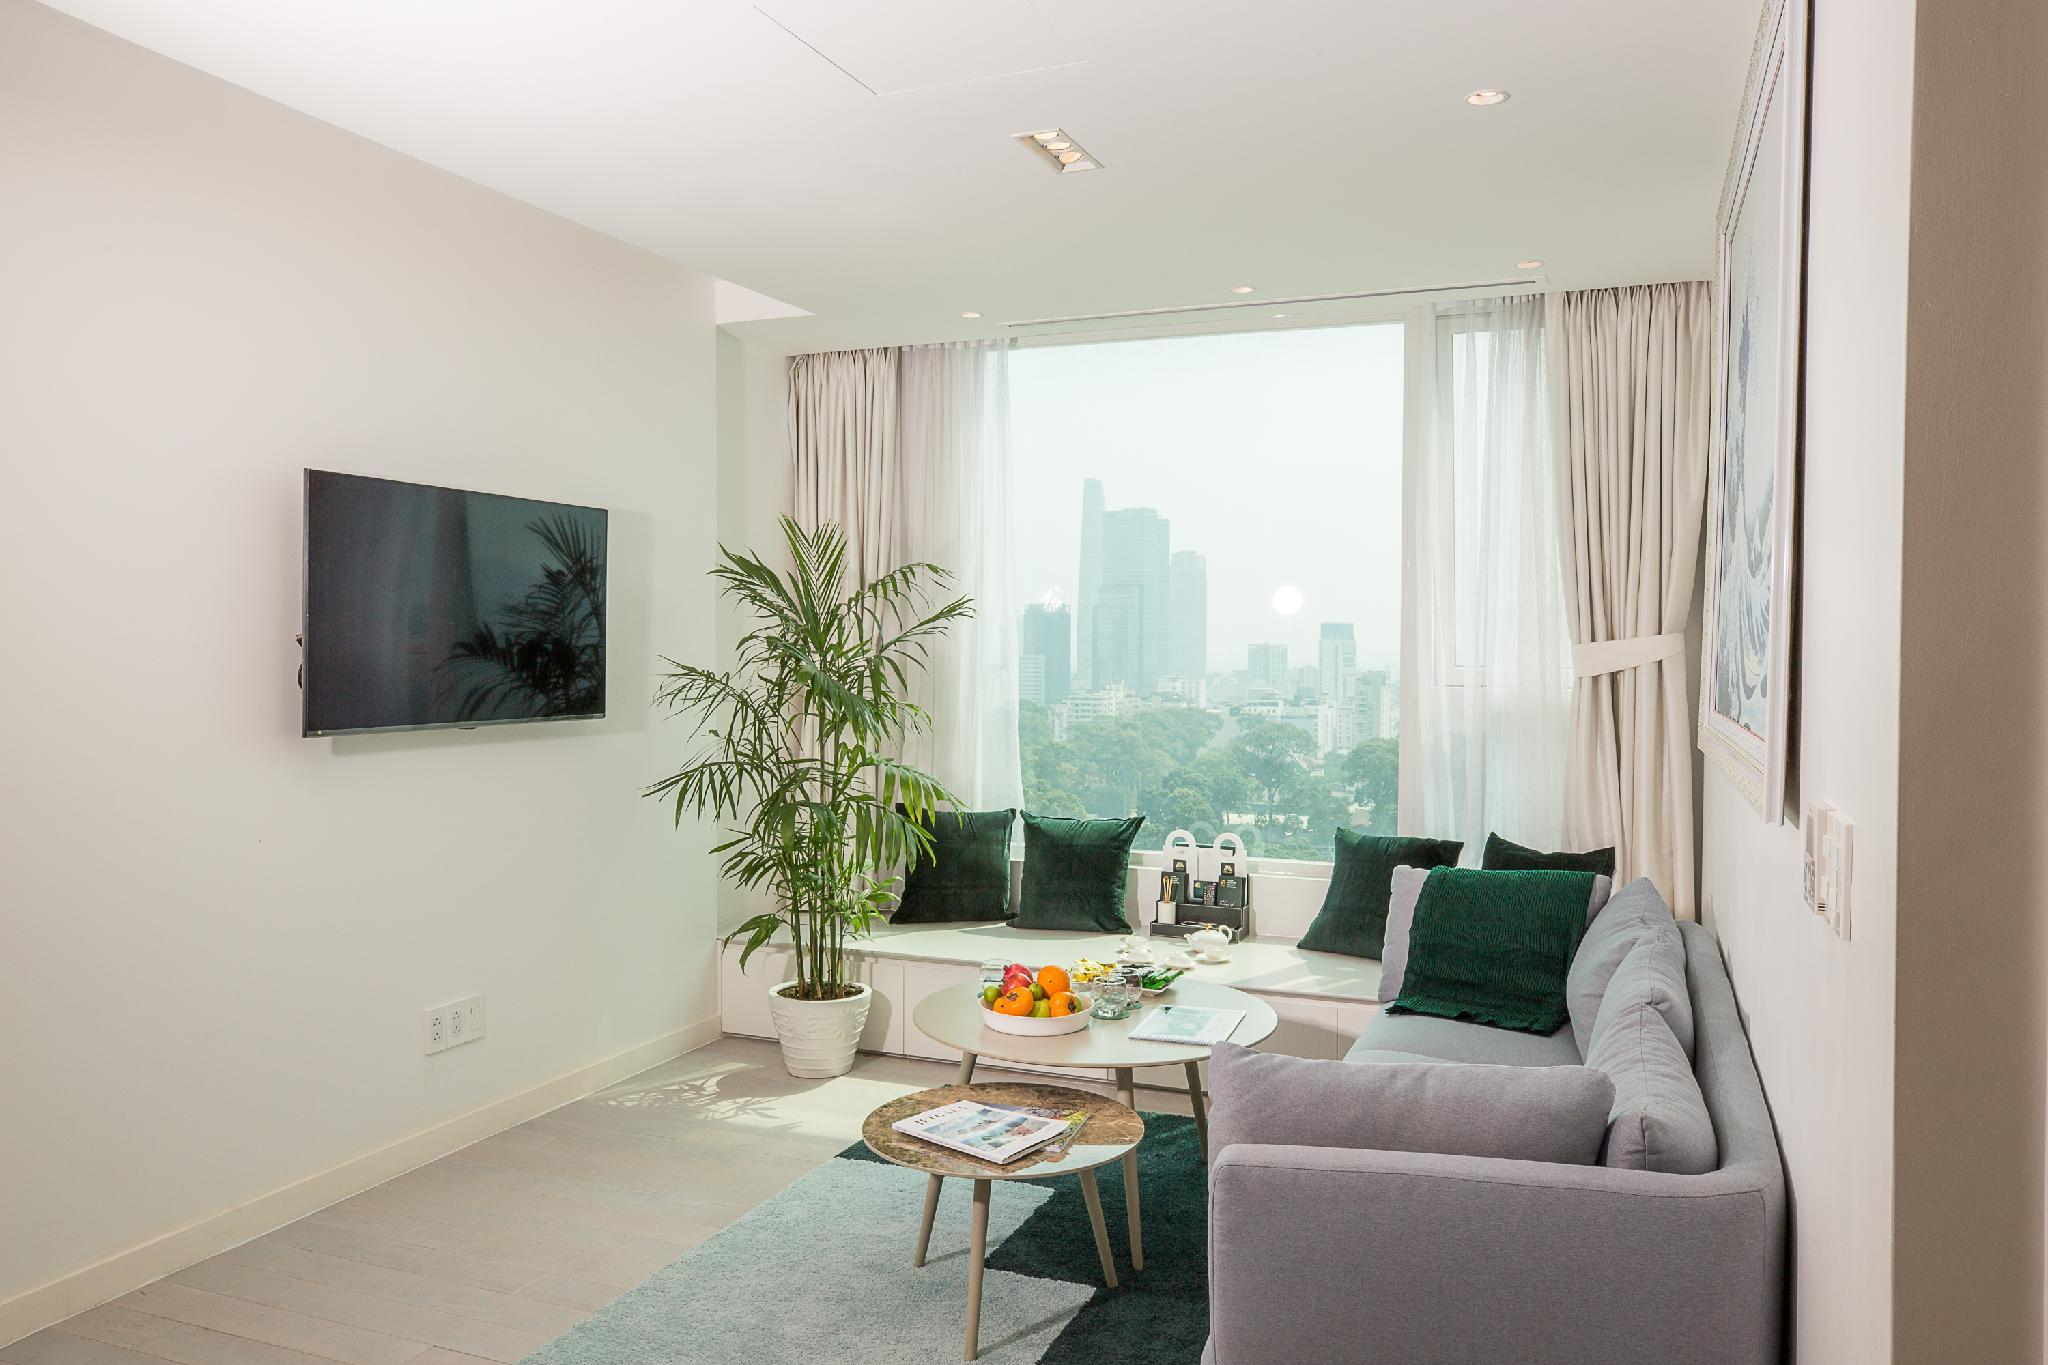 2 Bedroom Suite For 4 People With Rooftop Pool